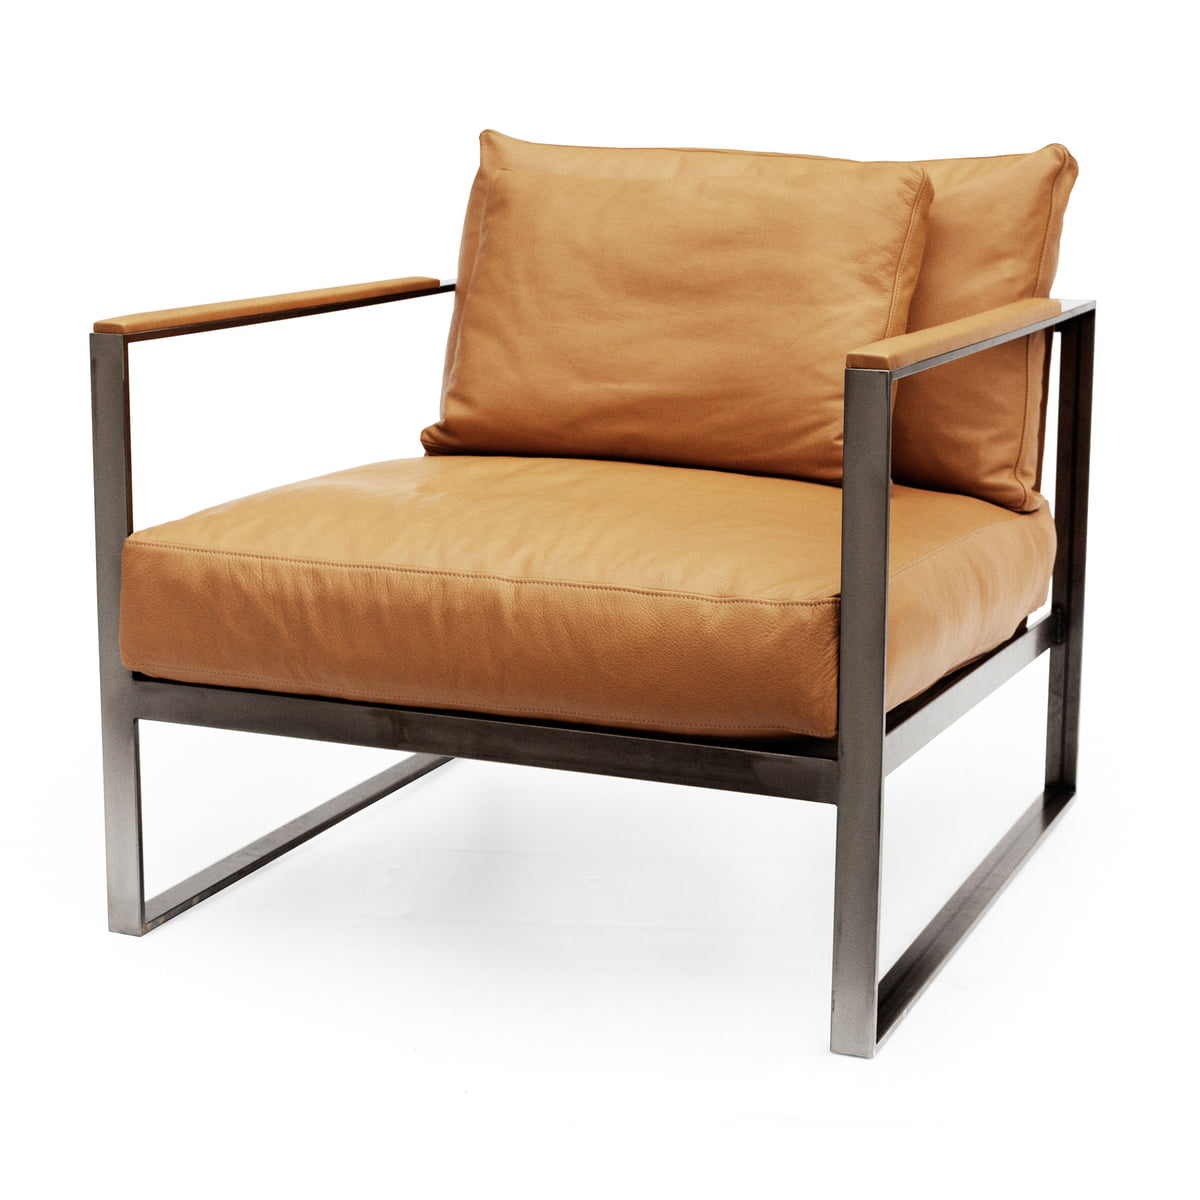 Monaco Lounge Chair by Röshults made of Iron  sc 1 st  Connox & Monaco Lounge Chair by Röshults in the shop